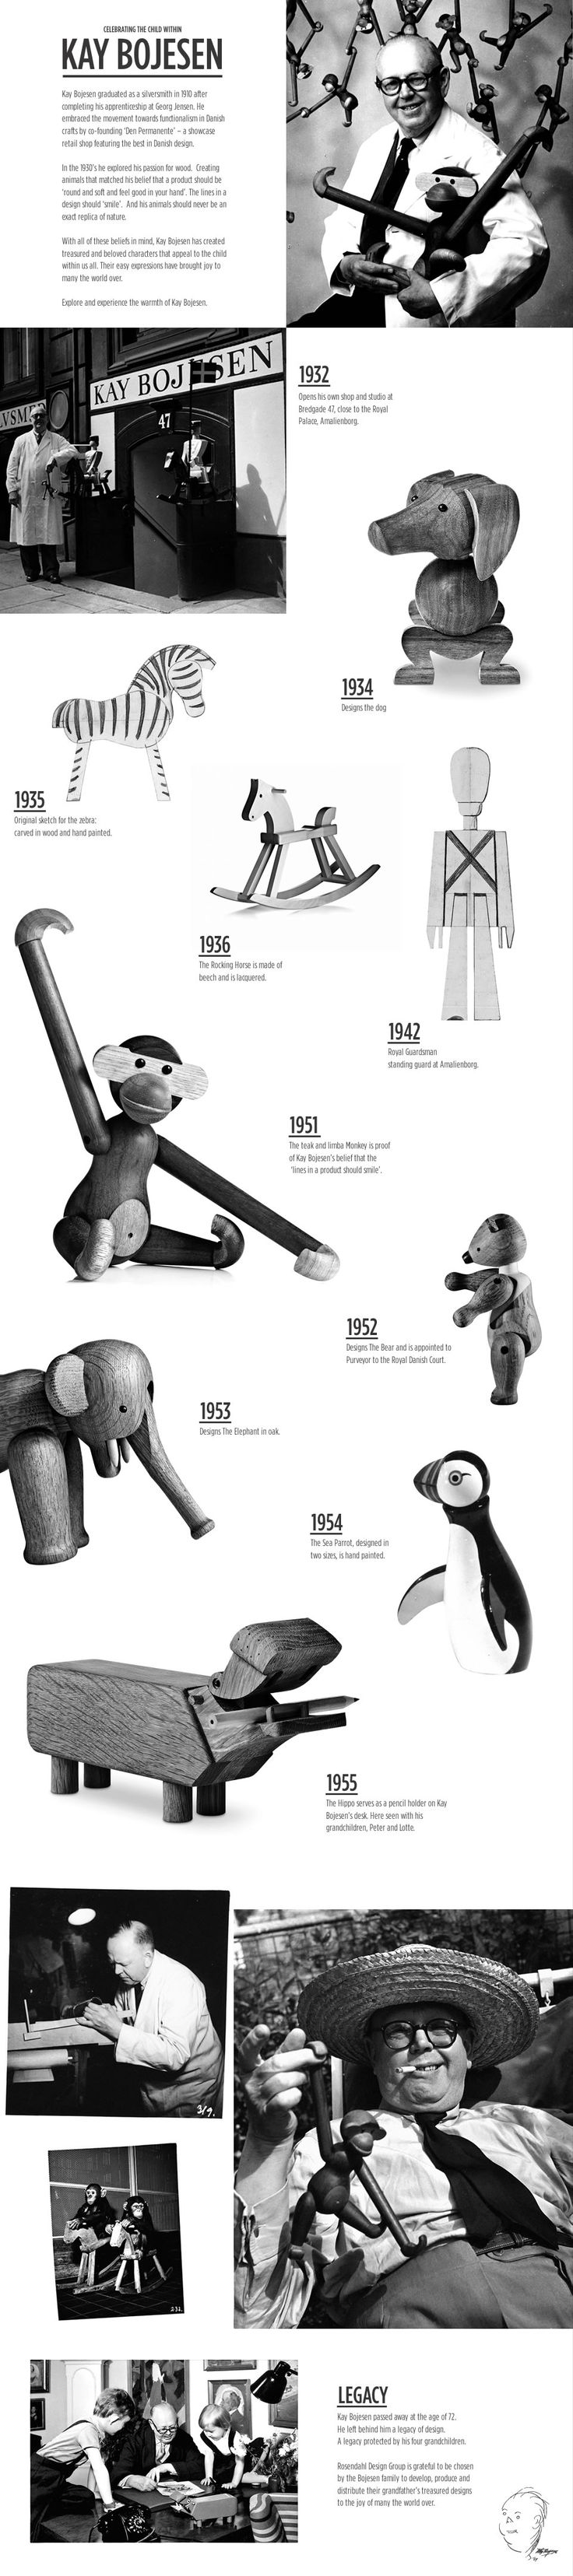 """Celebrating the Child Within"": wooden animals and toys by Kay Bojesen (Denmark). ""Creating animals that matched his belief that a product should be 'round and soft and feel good in your hand'. The lines in a design should 'smile'. And his animals should never be an exact replica of nature."""